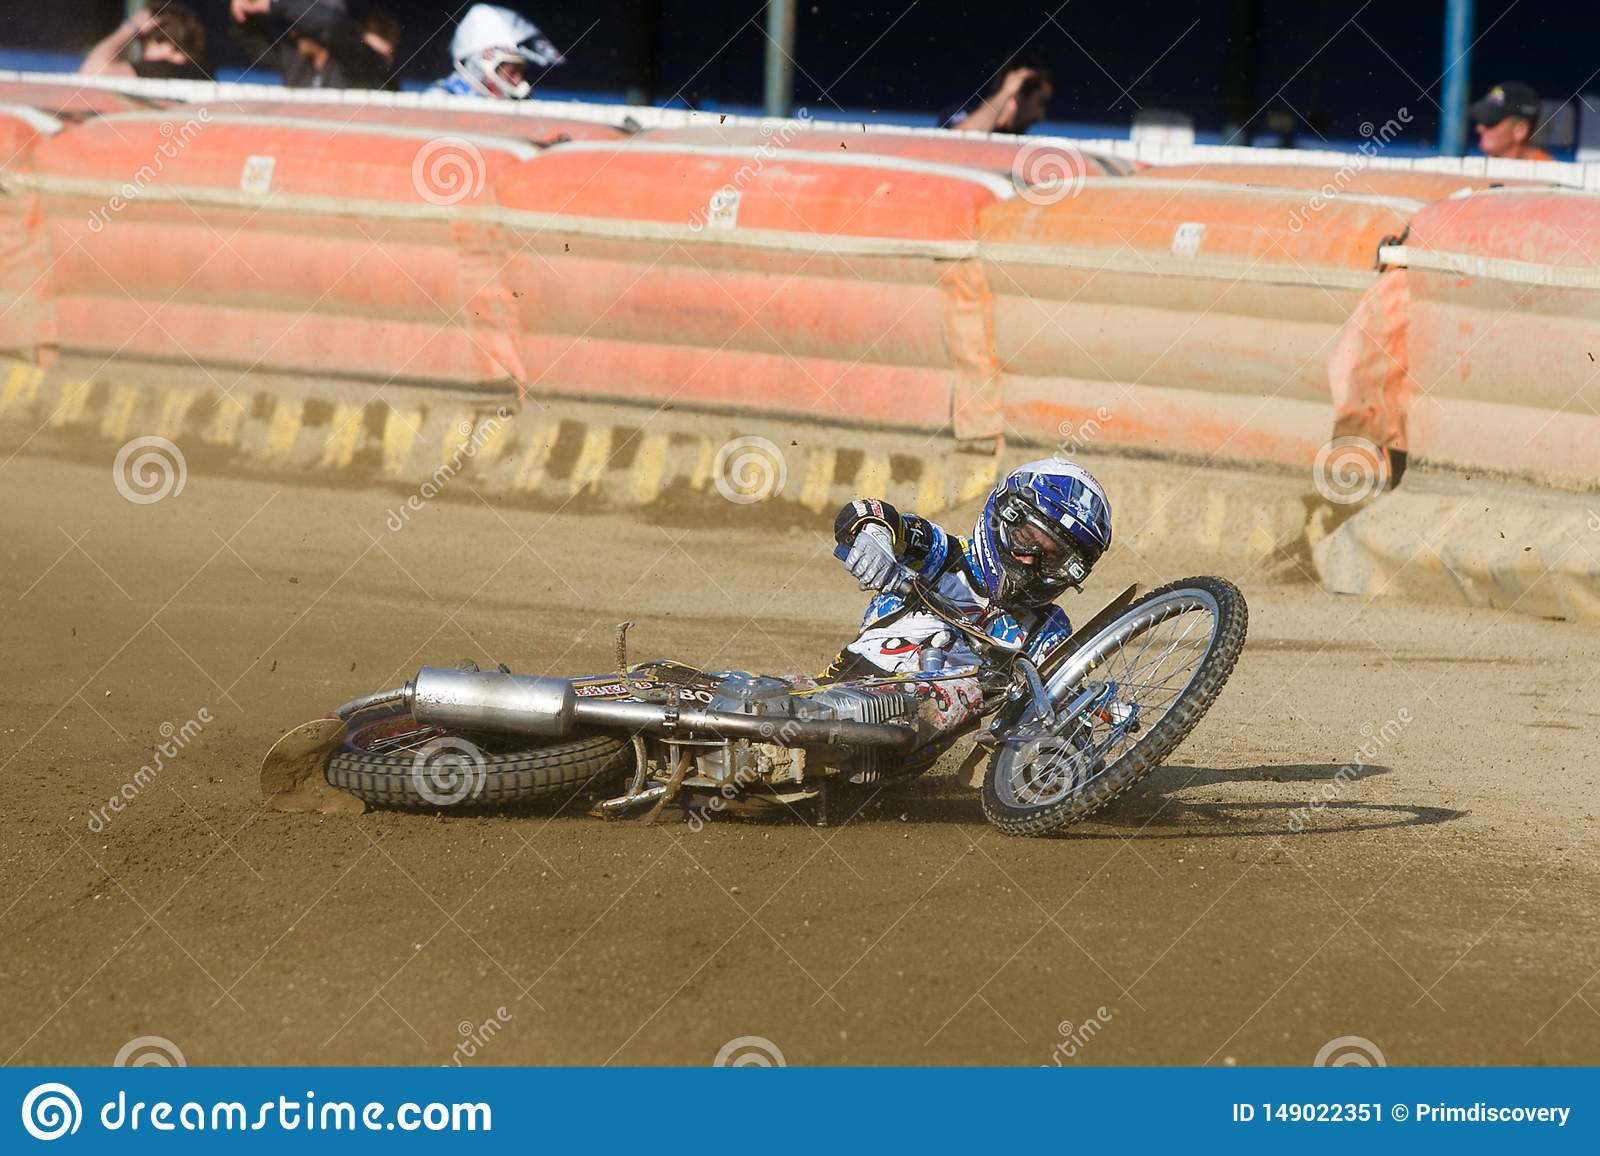 Russian speedway championship among Russian teams